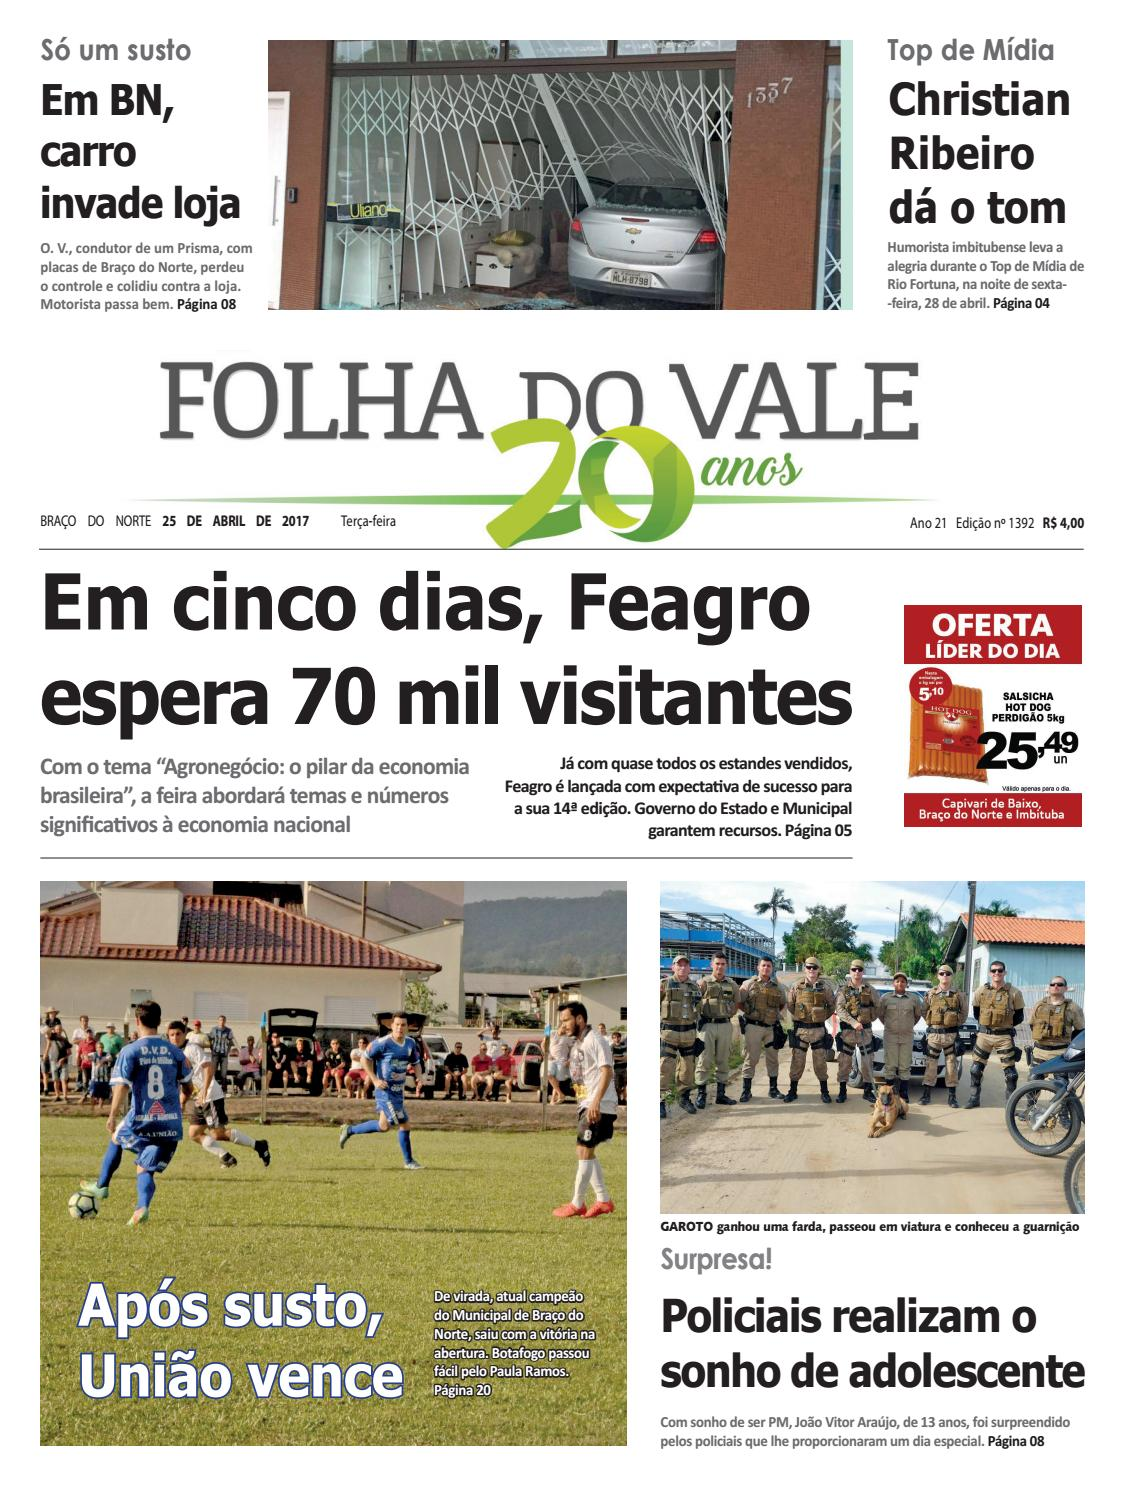 1392 by Folha do Vale - issuu 11d067c40c26f